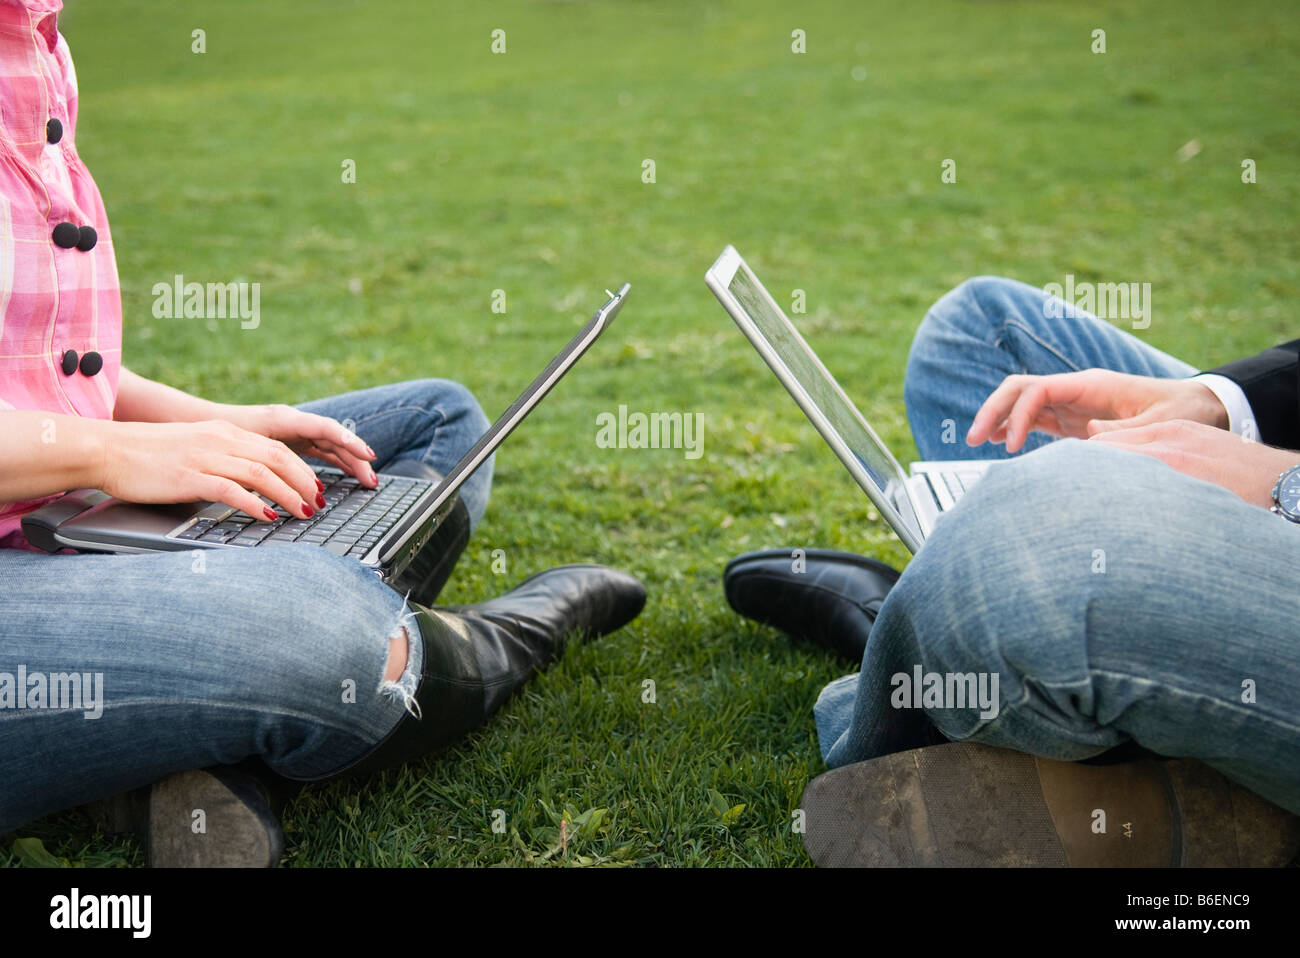 Guy and girl opposite to each other with computers - Stock Image